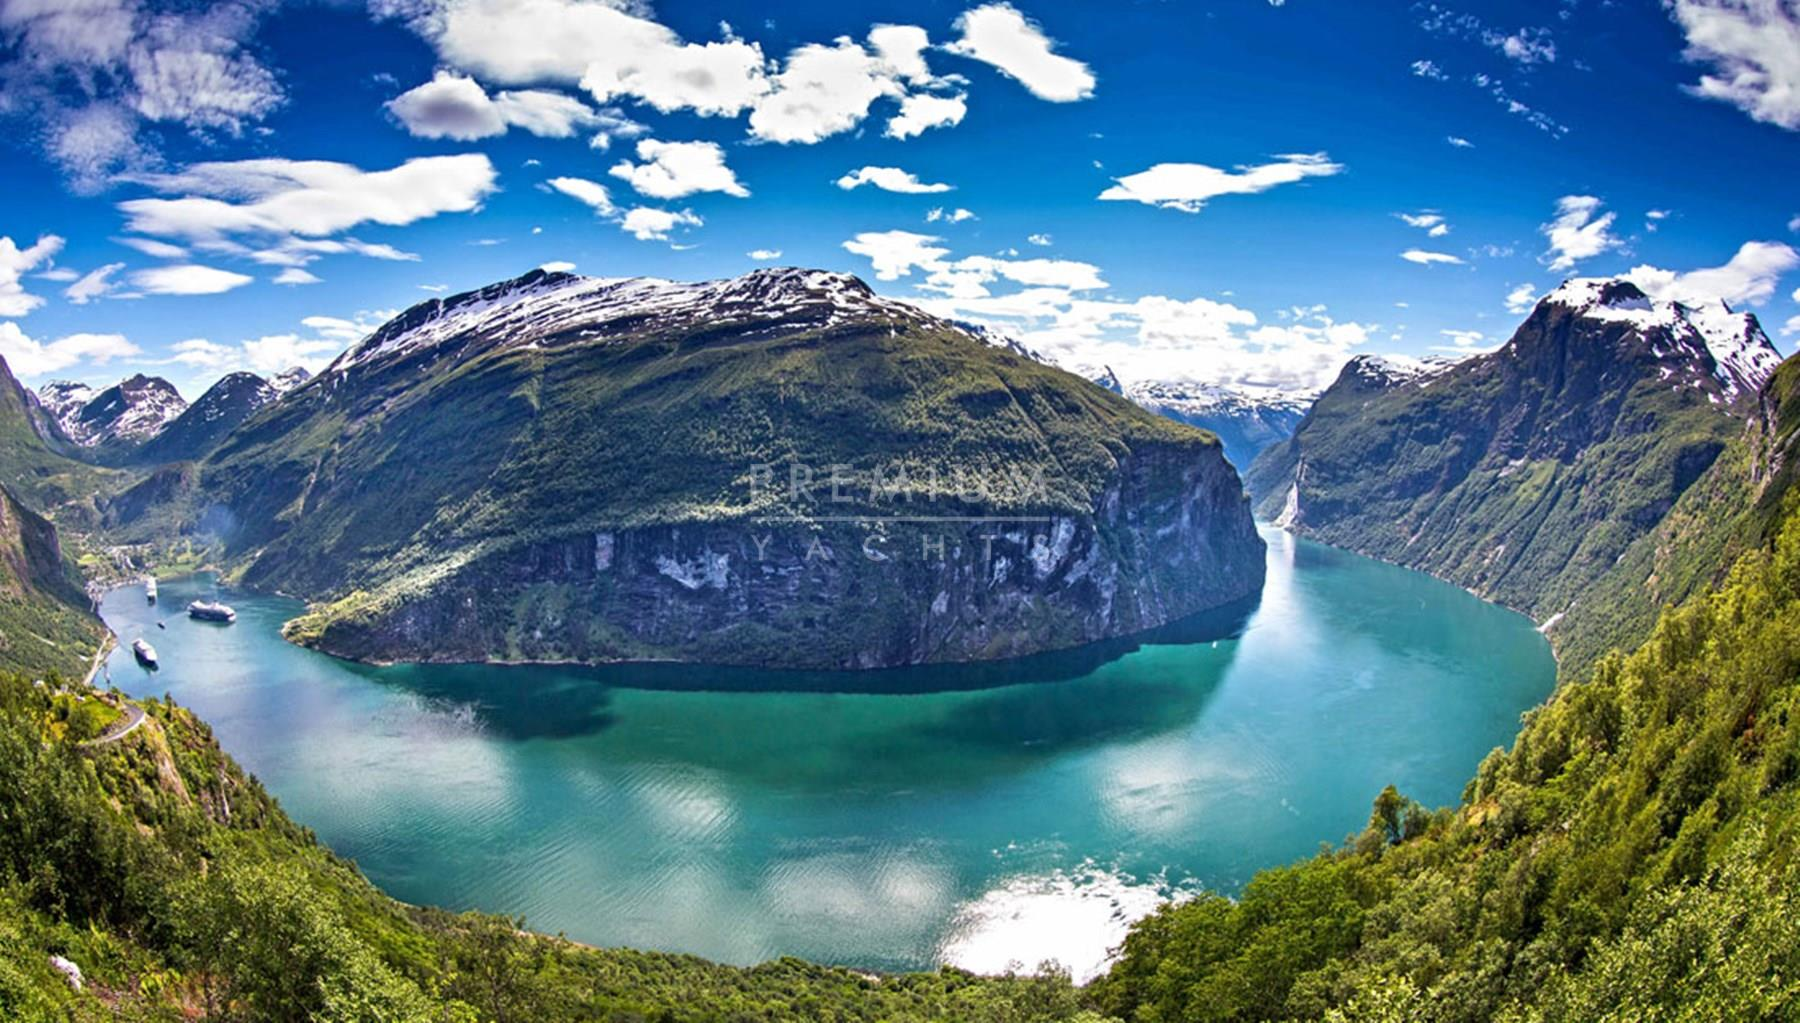 Geirangerfjord, the third largest fjord in the world